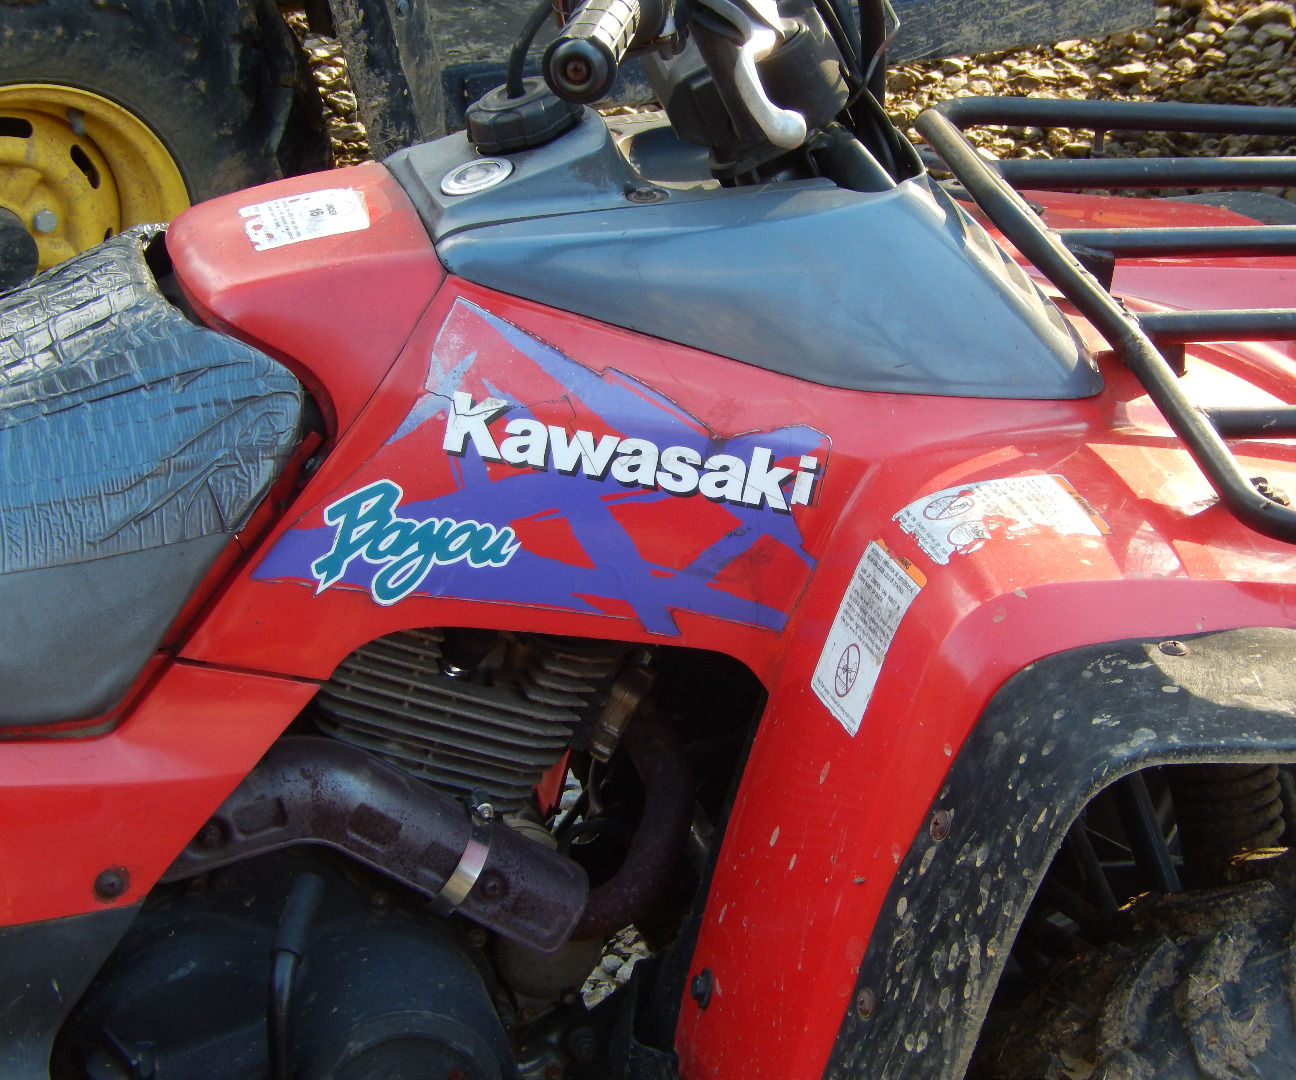 hight resolution of 1991 kawasaki bayou 300 4x4 wiring diagram house wiring diagram 2001 kawasaki prairie 300 wiring diagram kawasaki klf 300 4x4 wiring diagram